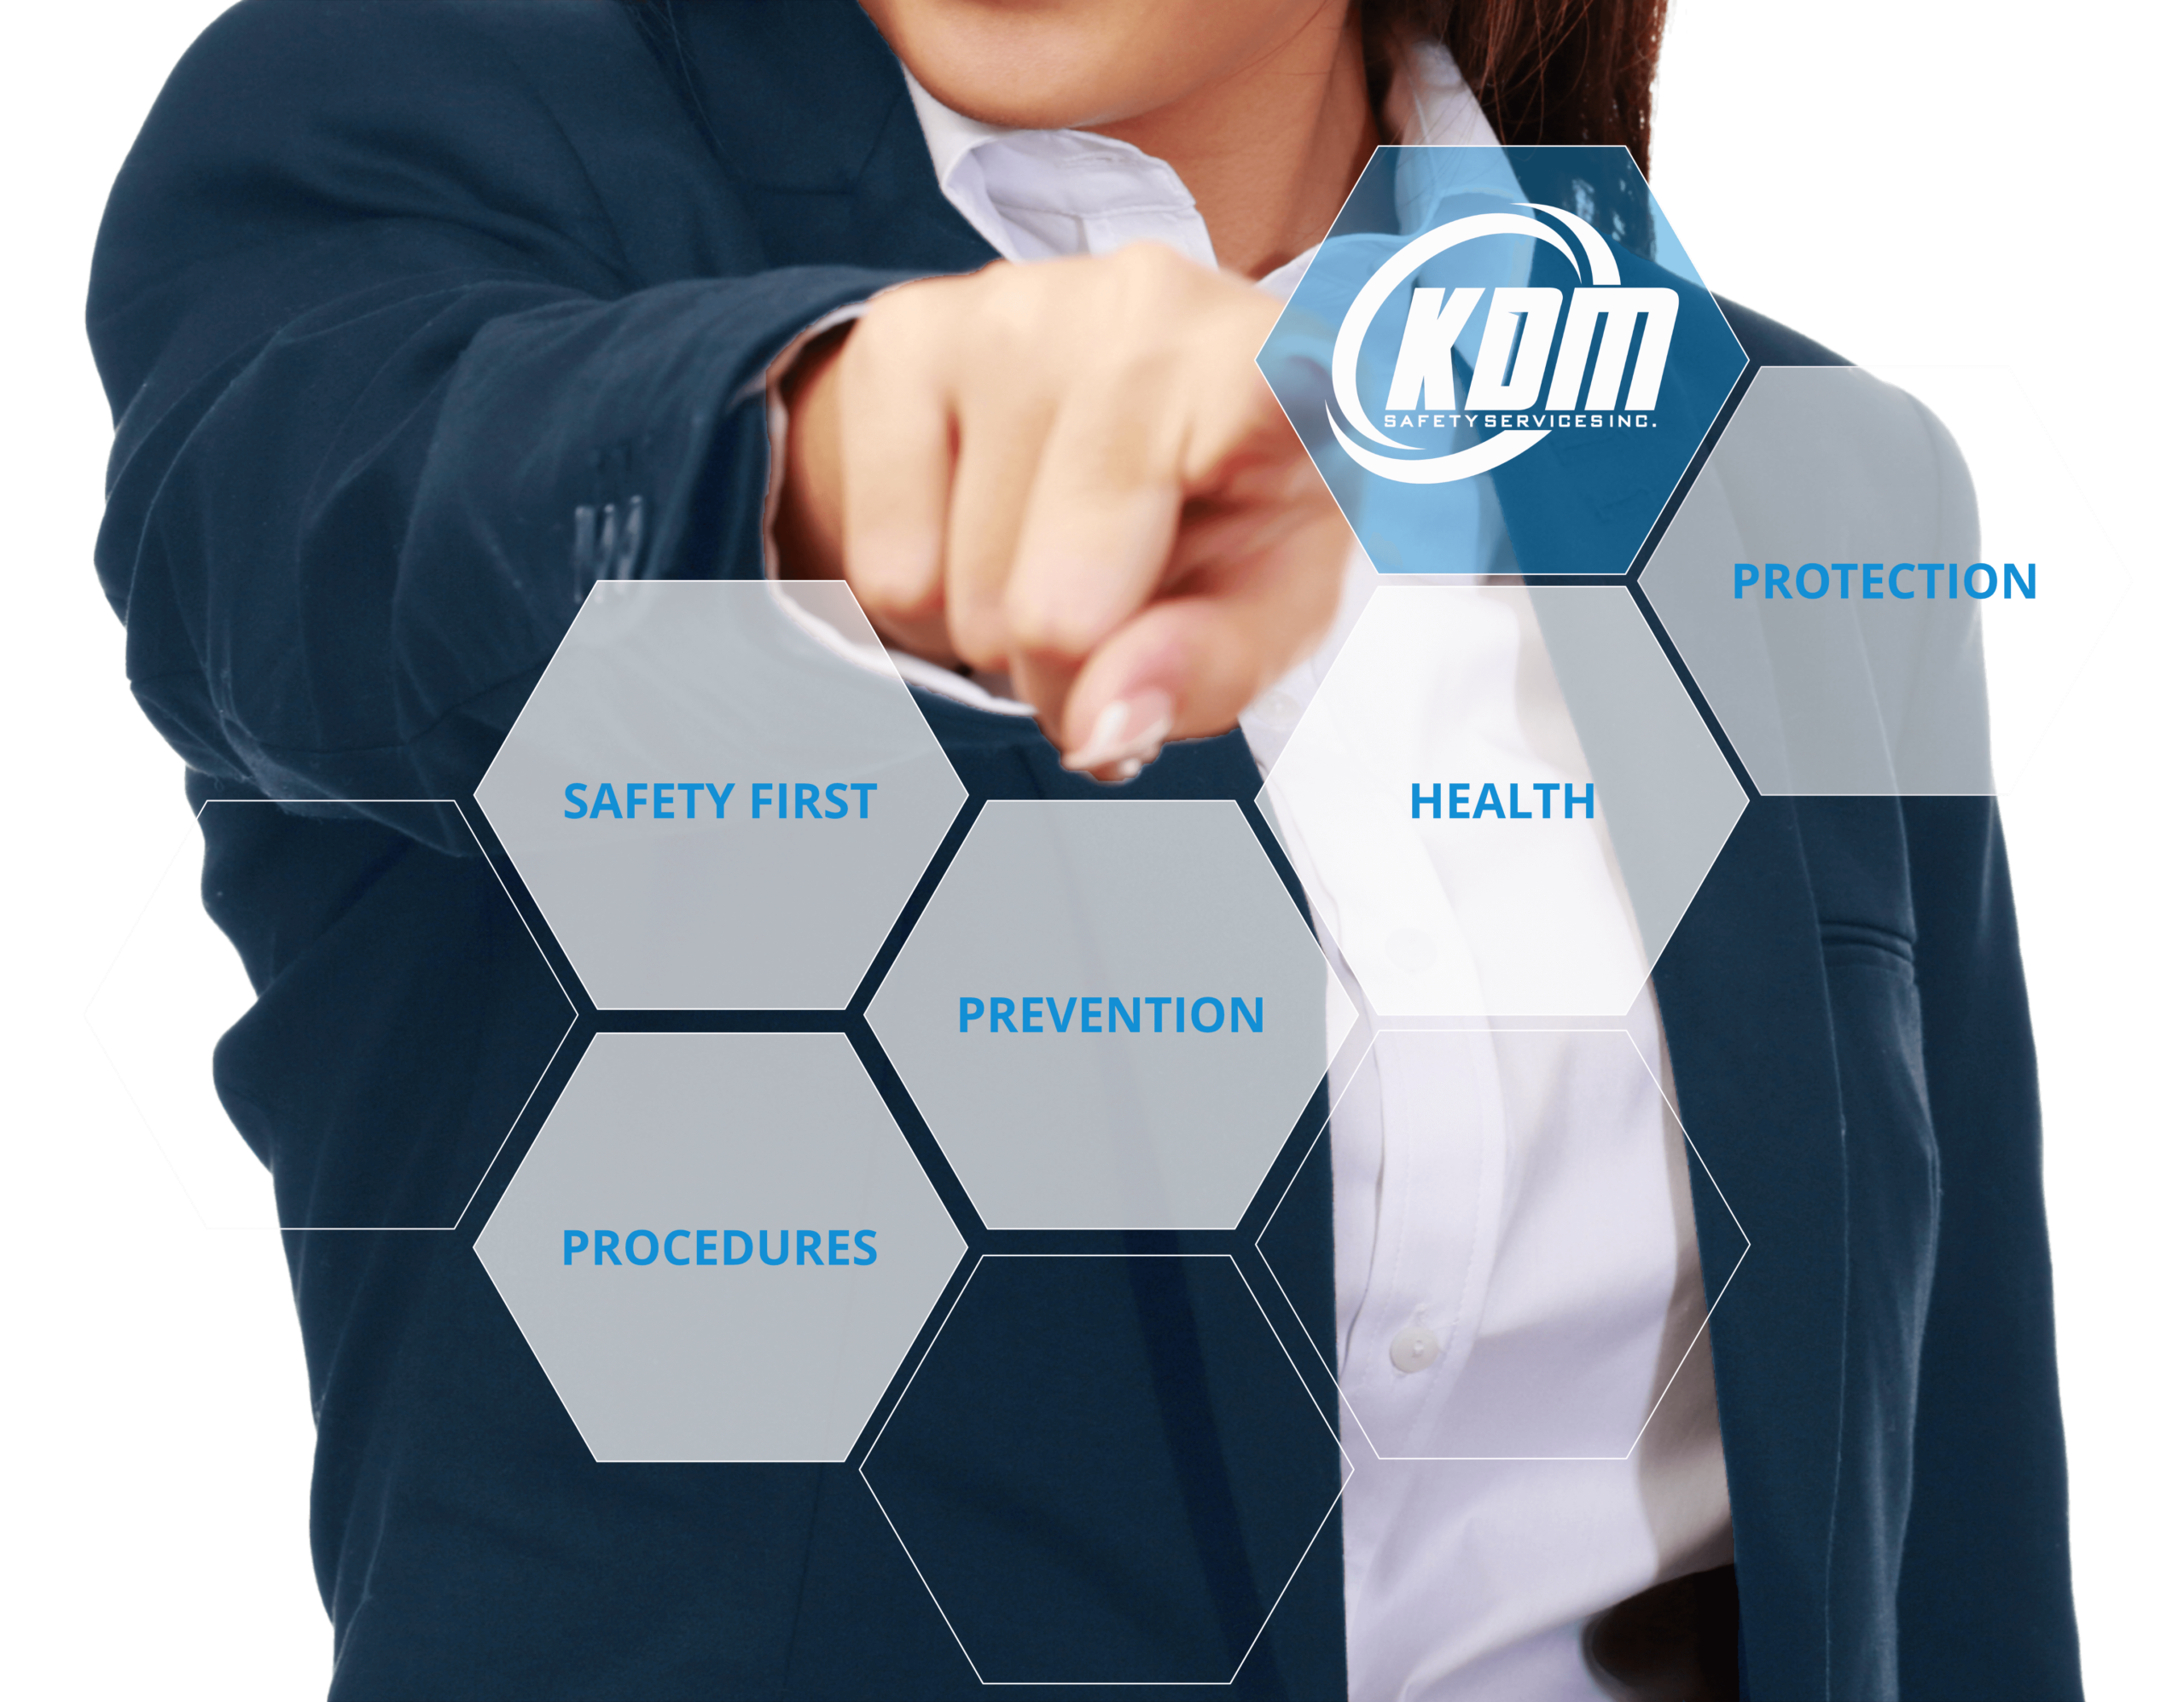 Female pointing to KDM Safety Services Logo